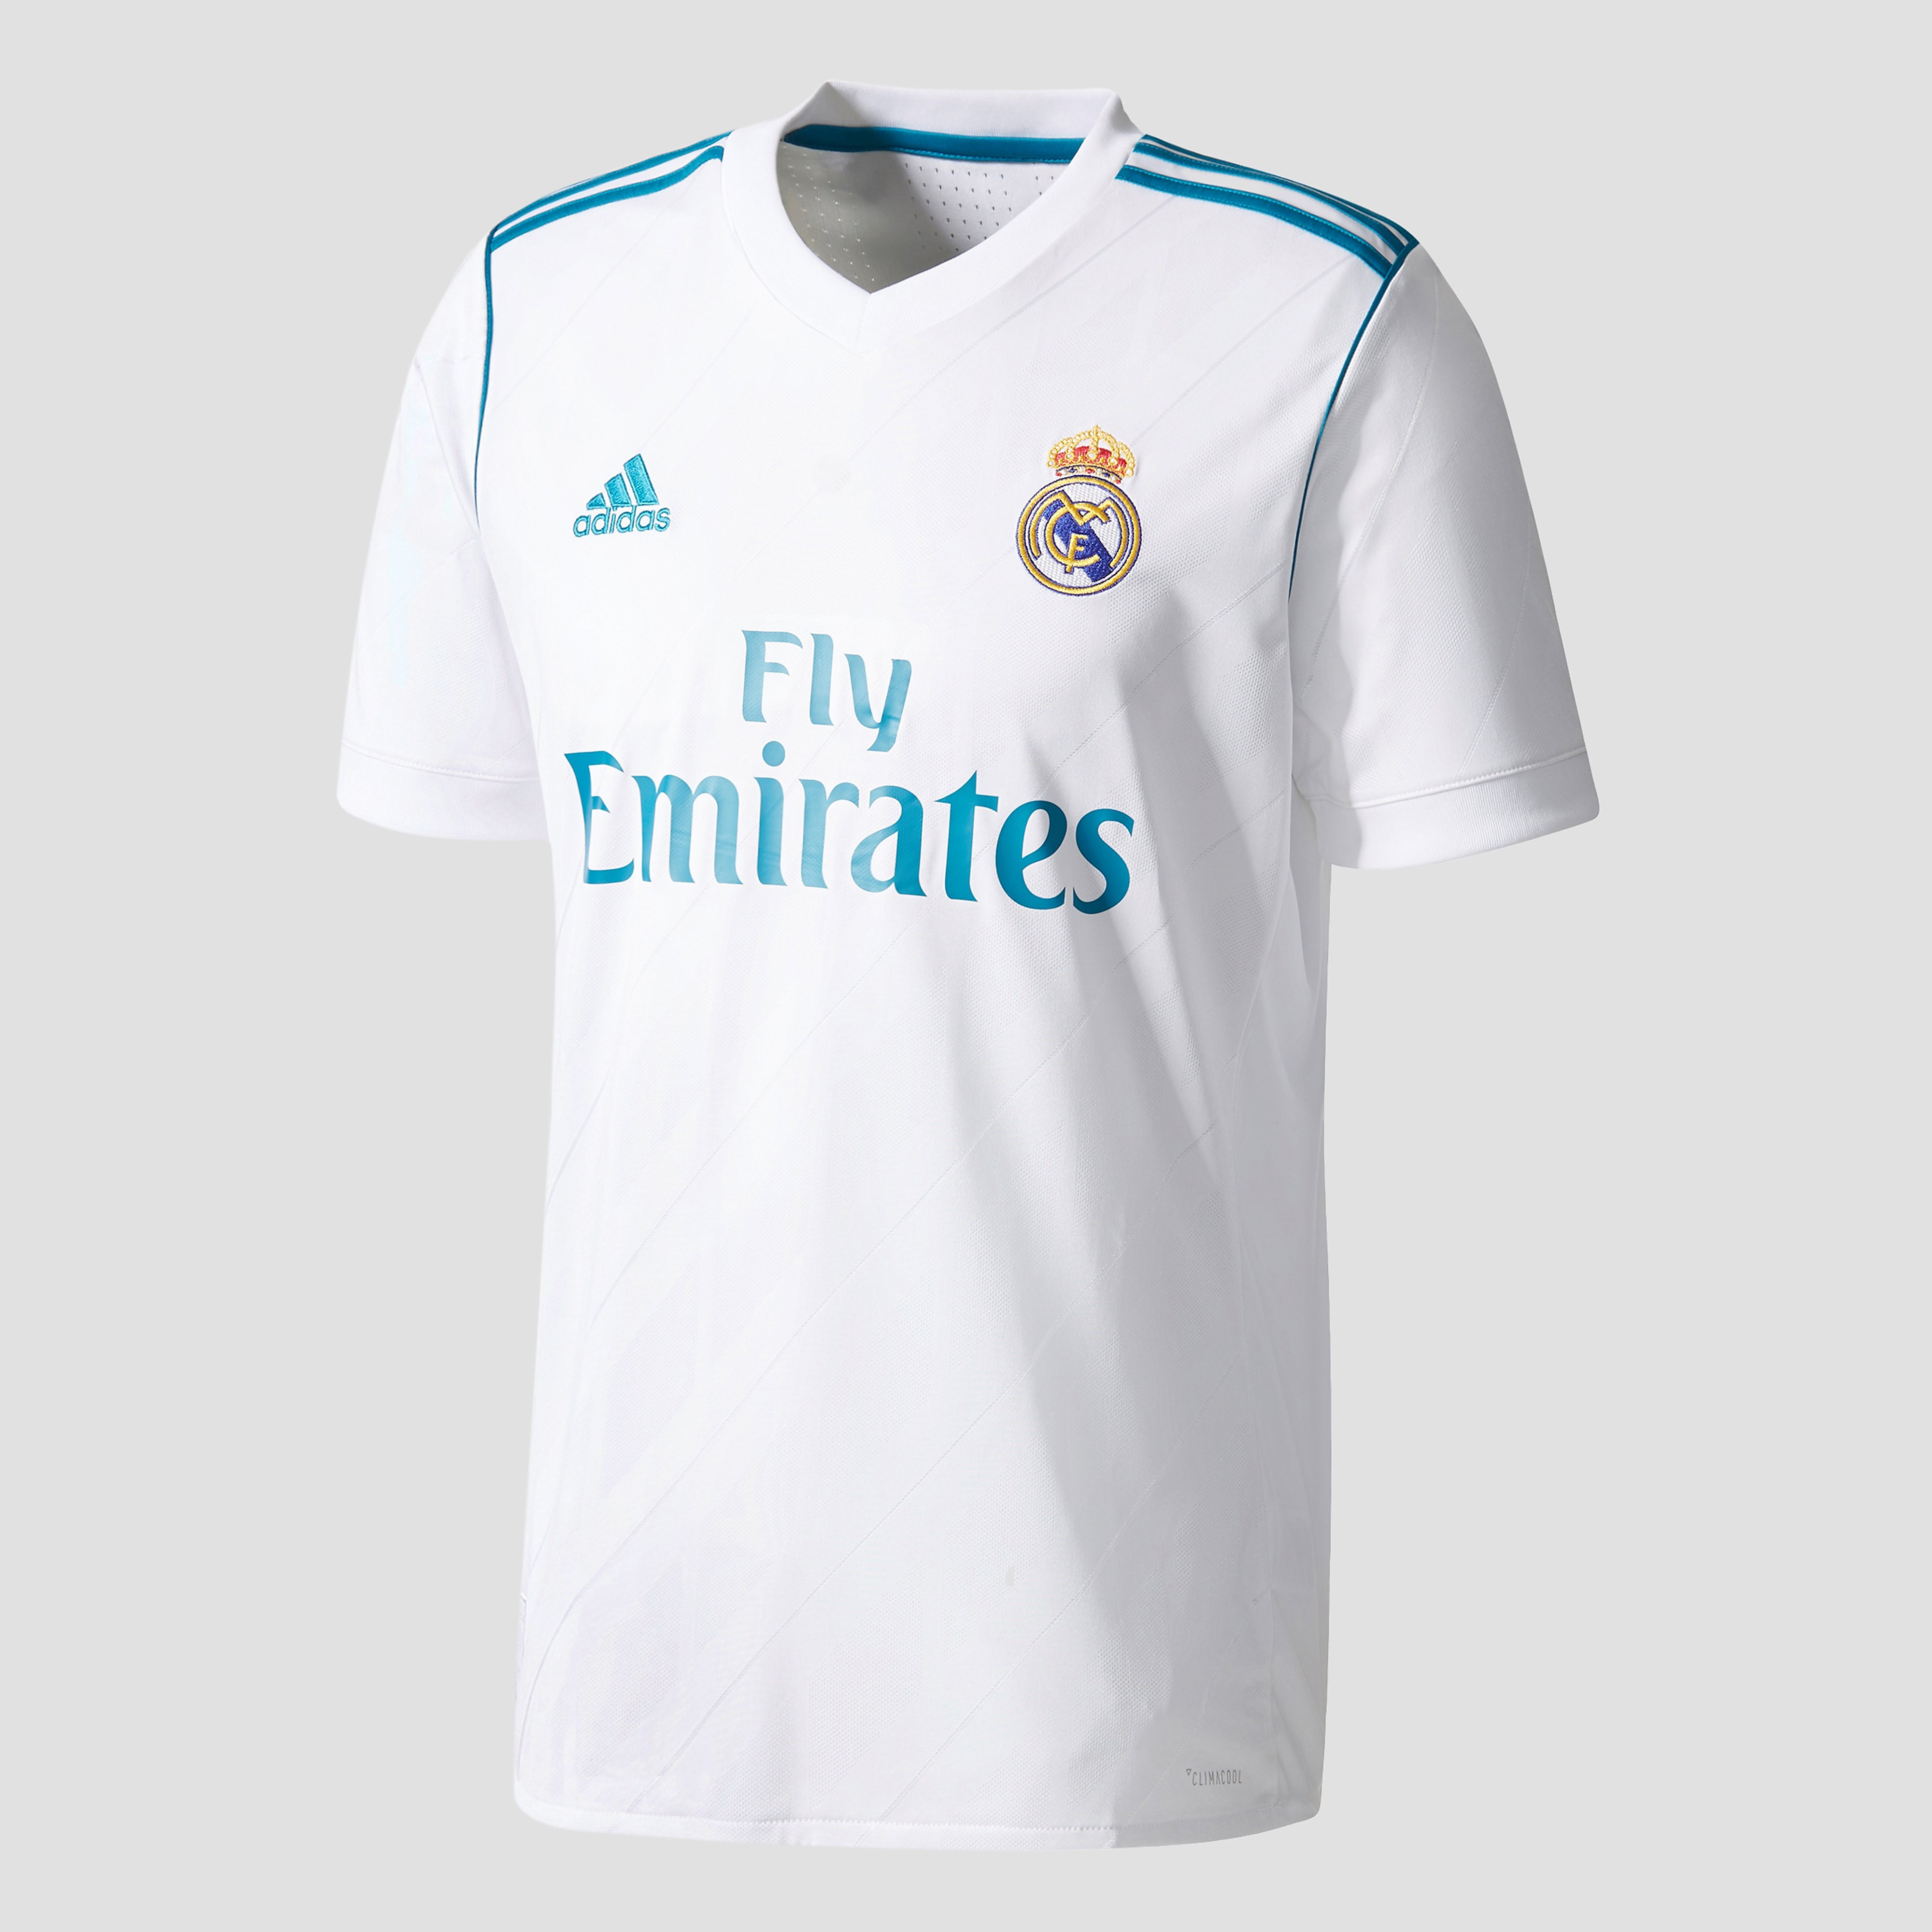 ADIDAS REAL MADRID THUISSHIRT 17/18 WIT/TURQUOISE HEREN